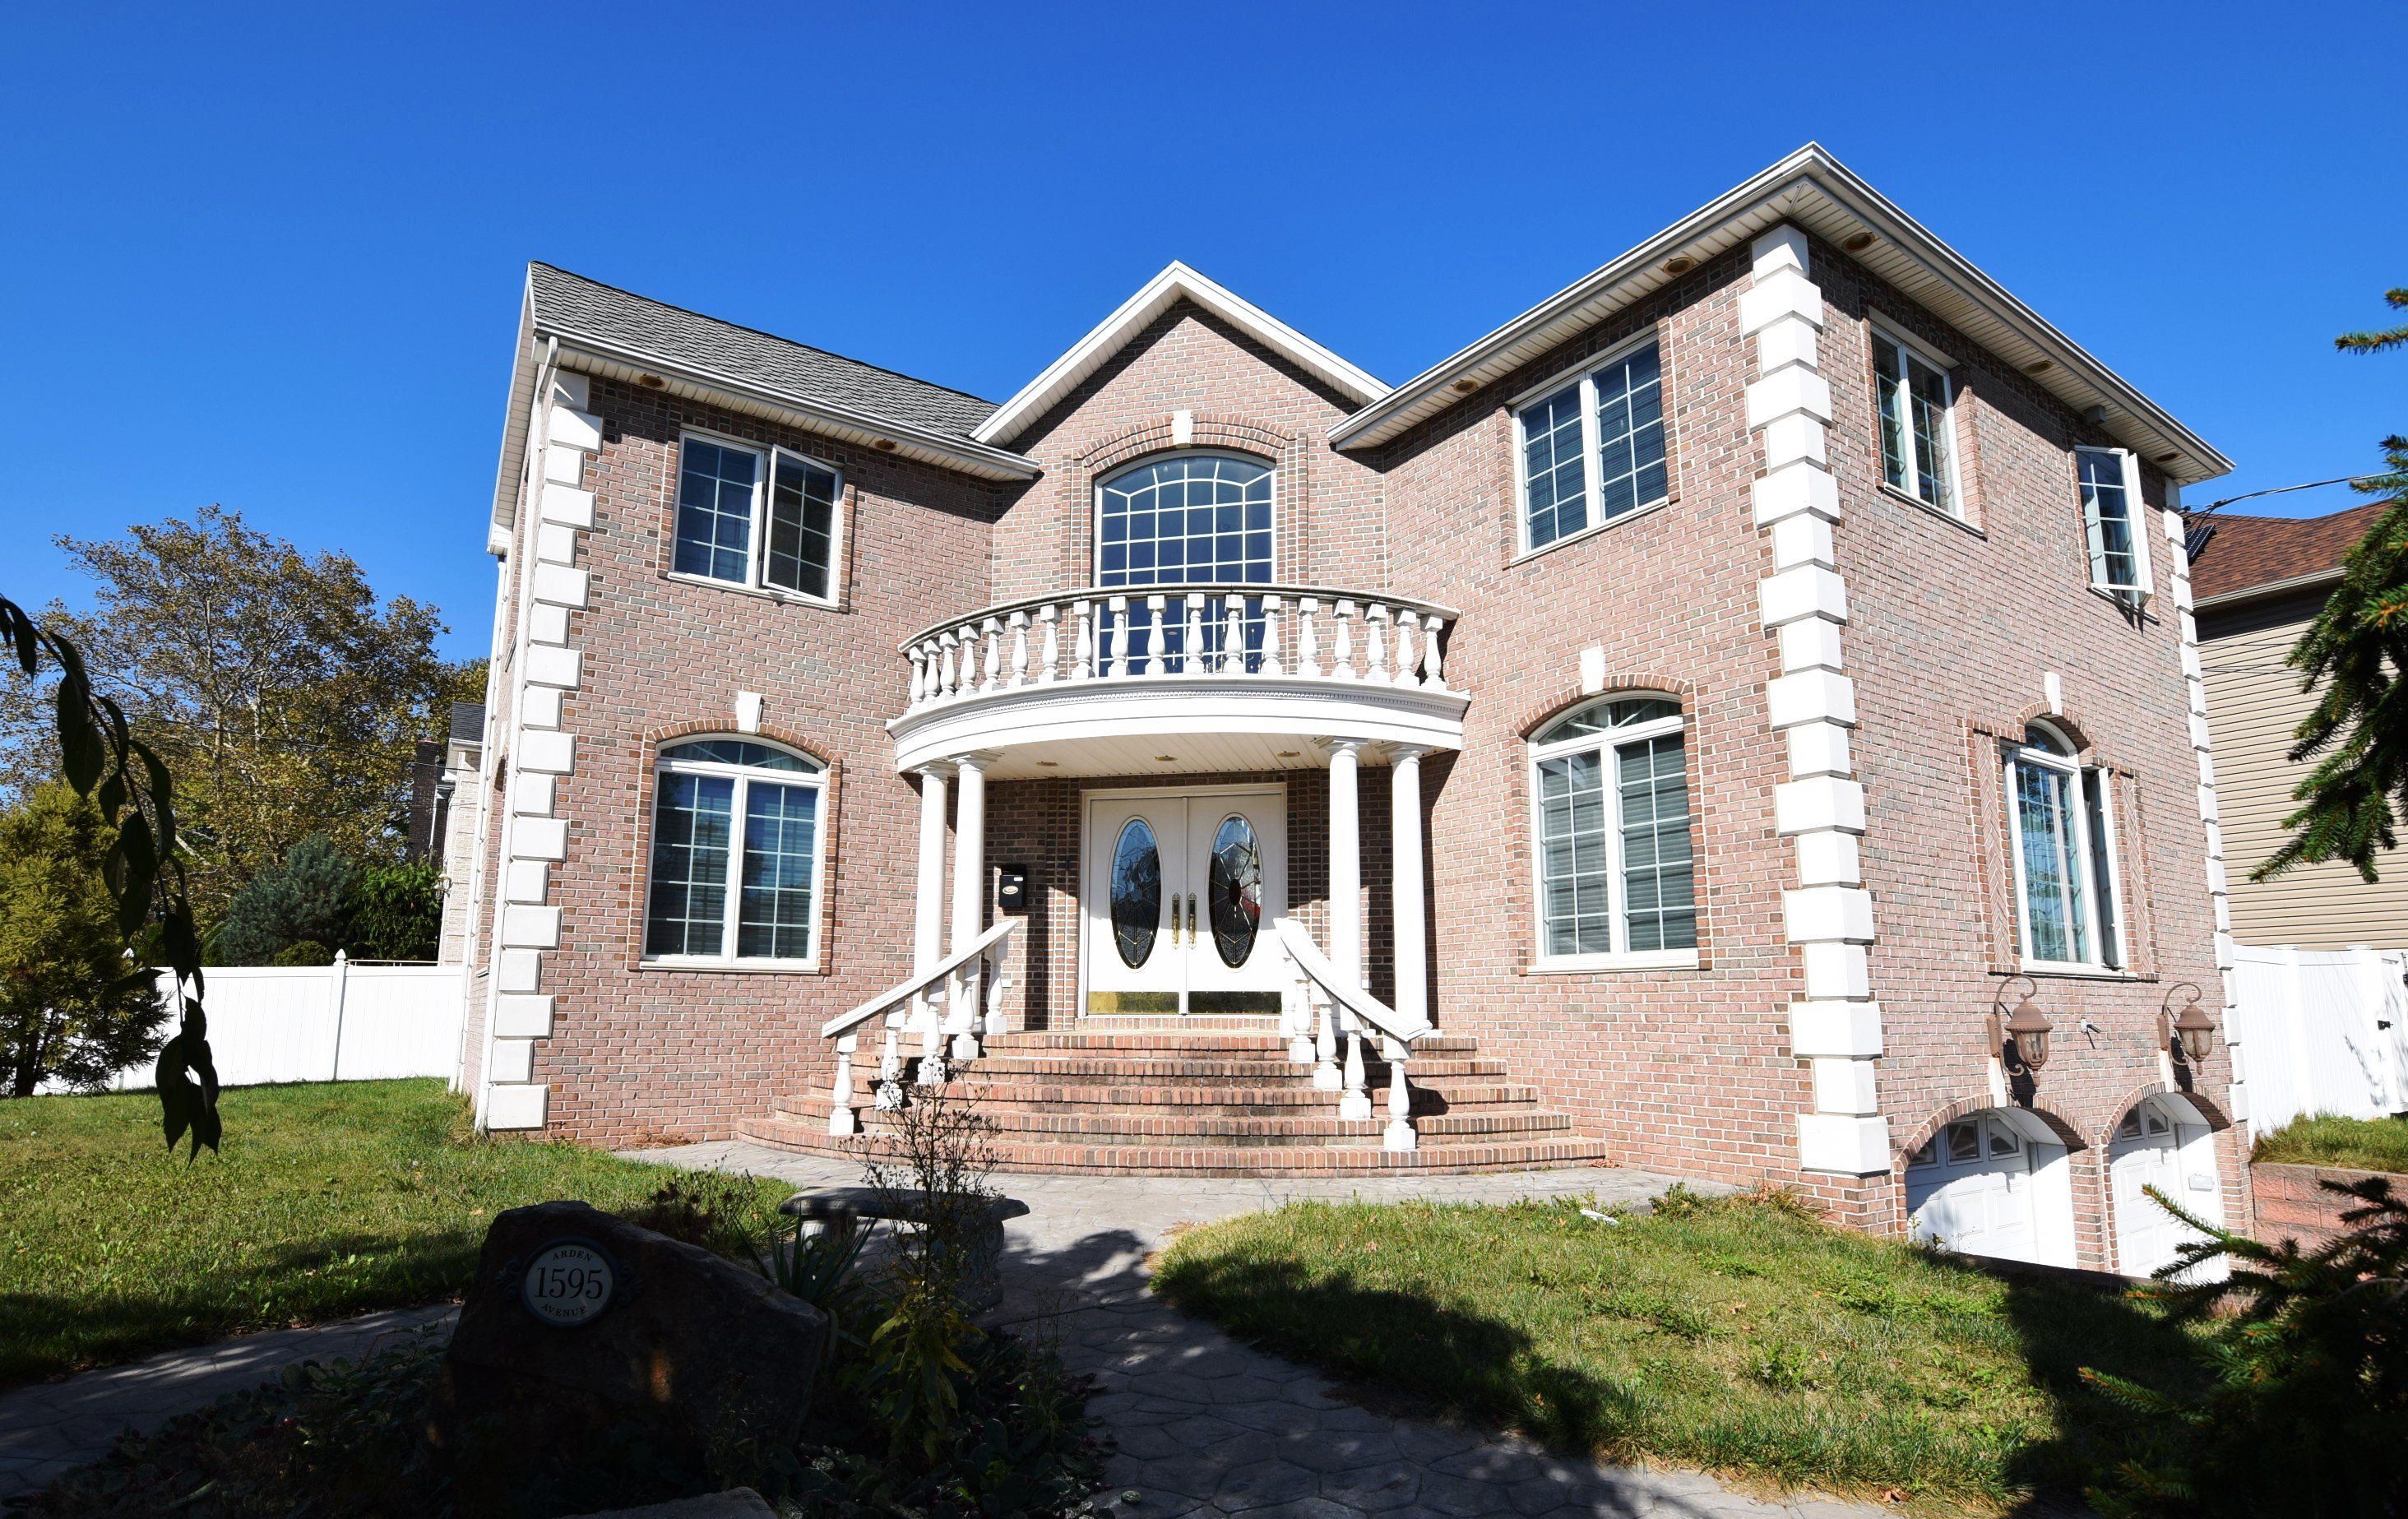 SE Annadale Magnificent center hall colonial home